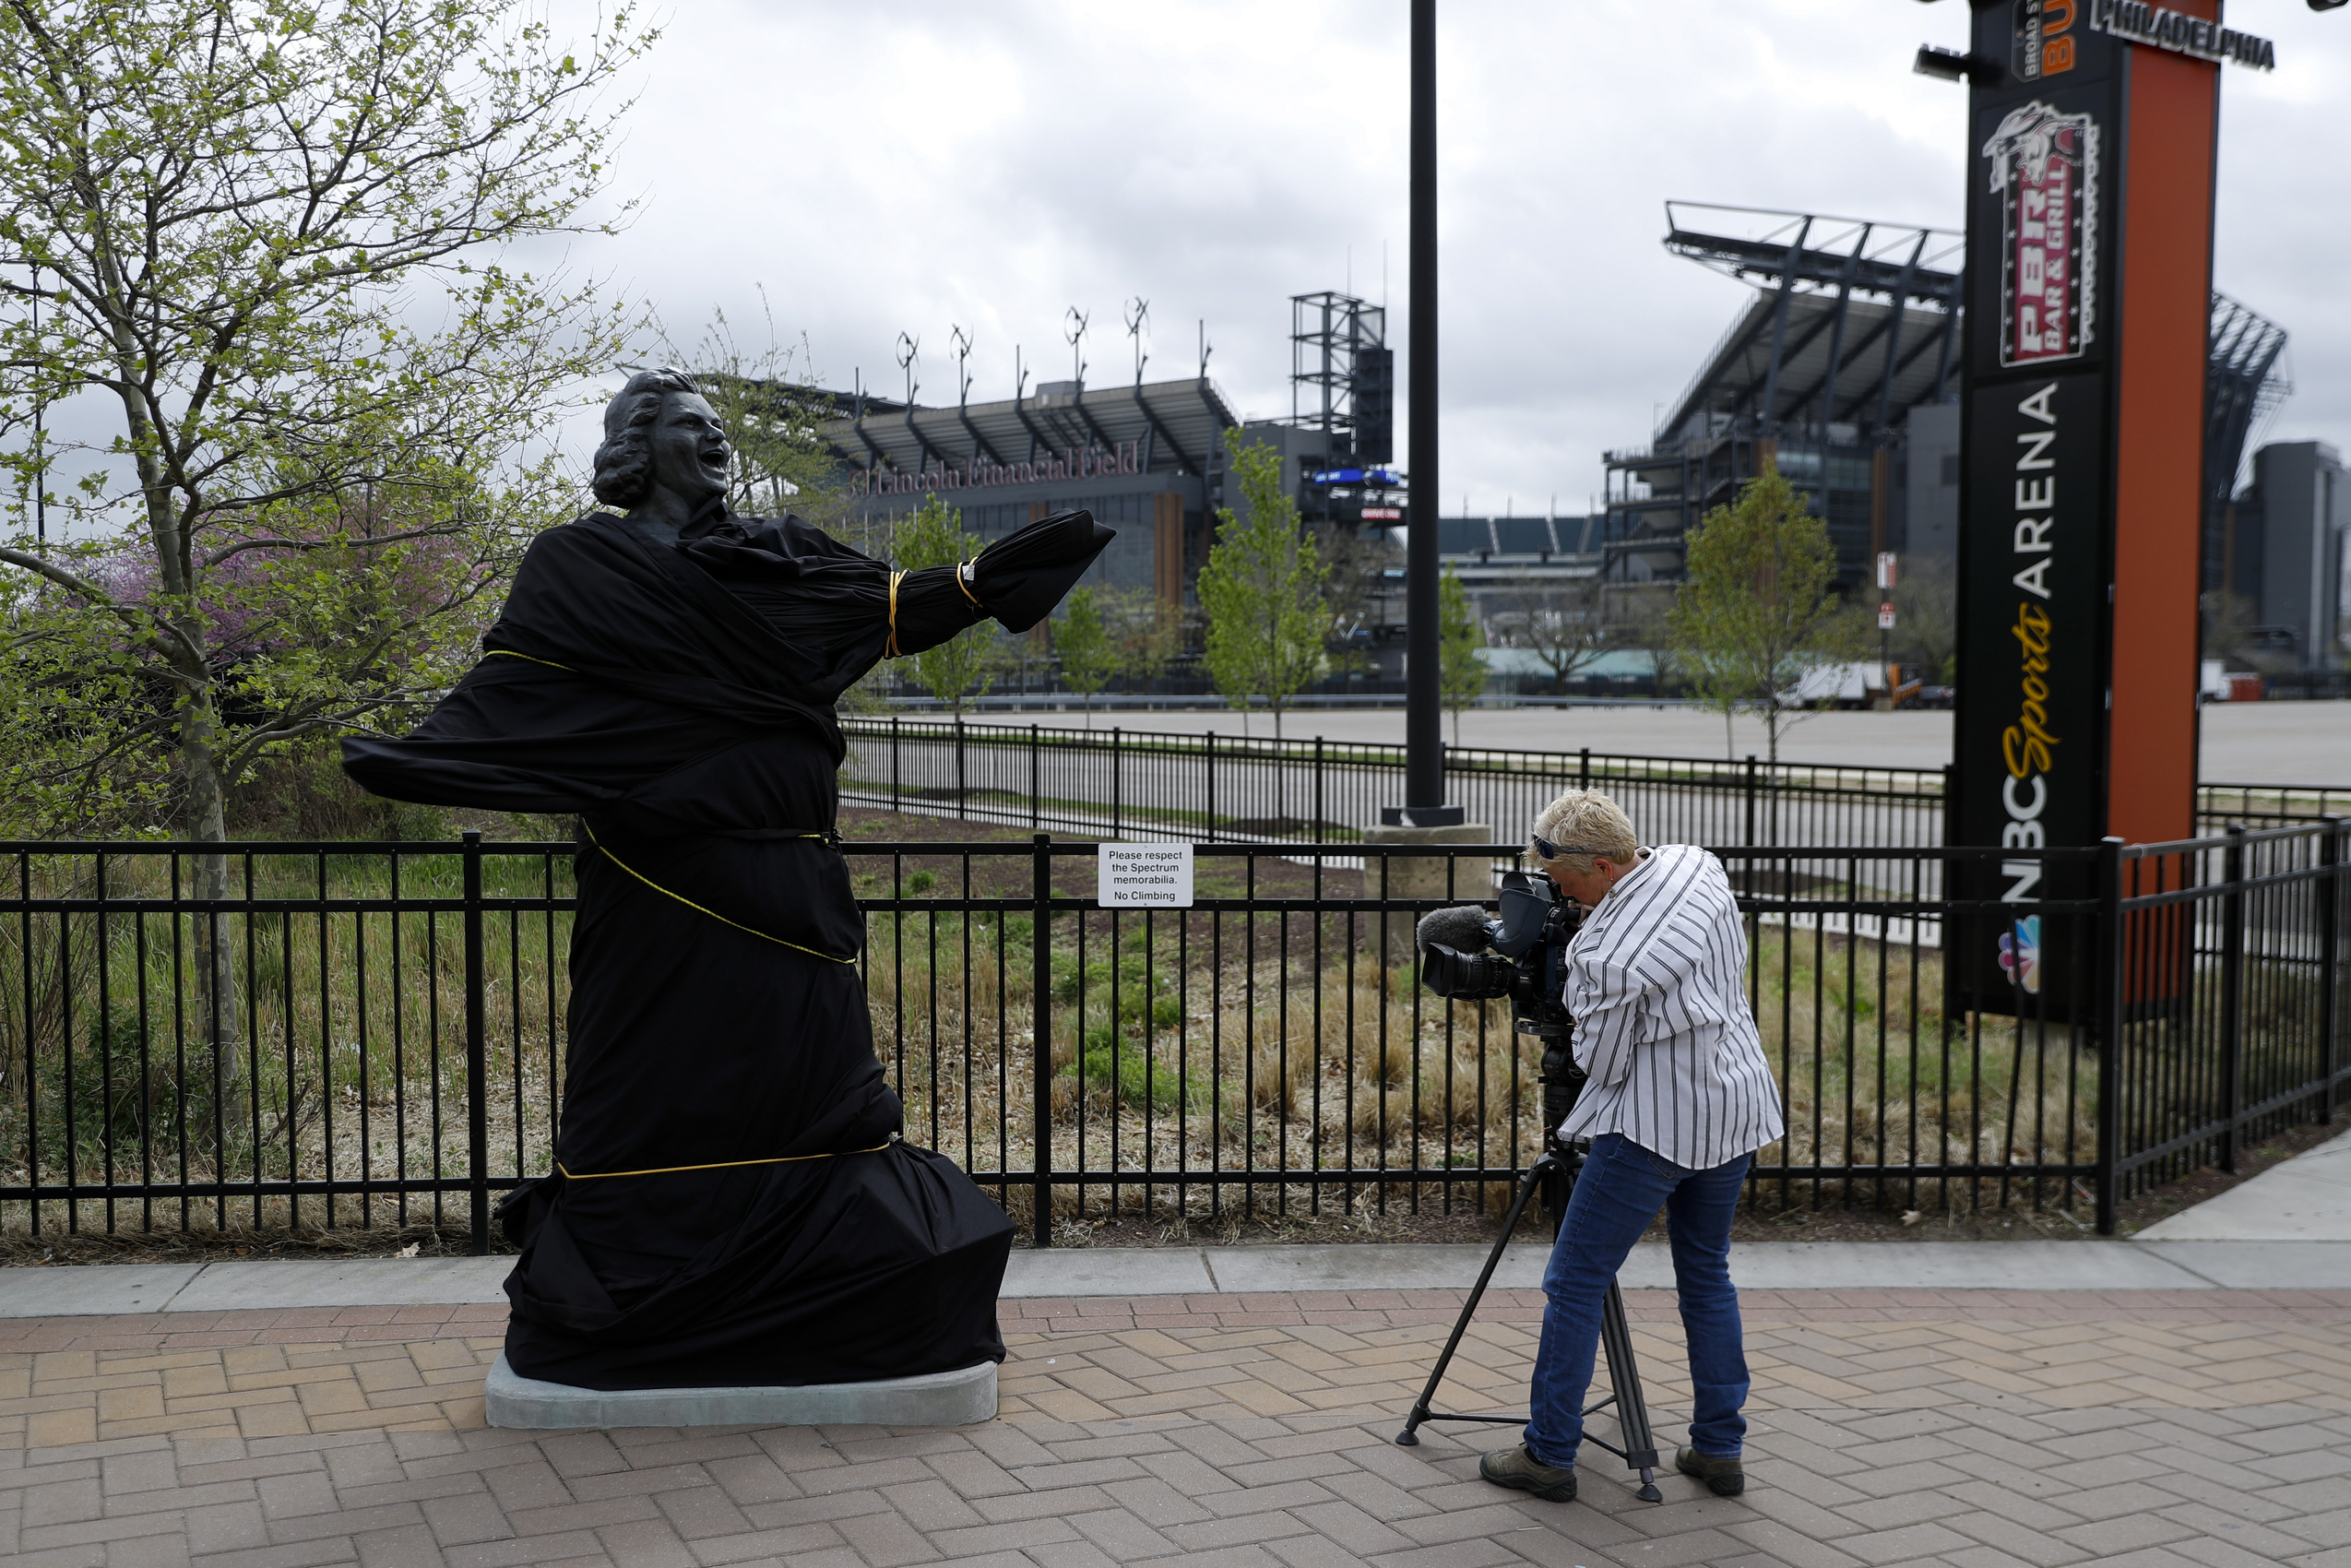 8a77cef377acb4 A television photographer records the partially covered statue of singer  Kate Smith near the Wells Fargo Center in Philadelphia on April 19.